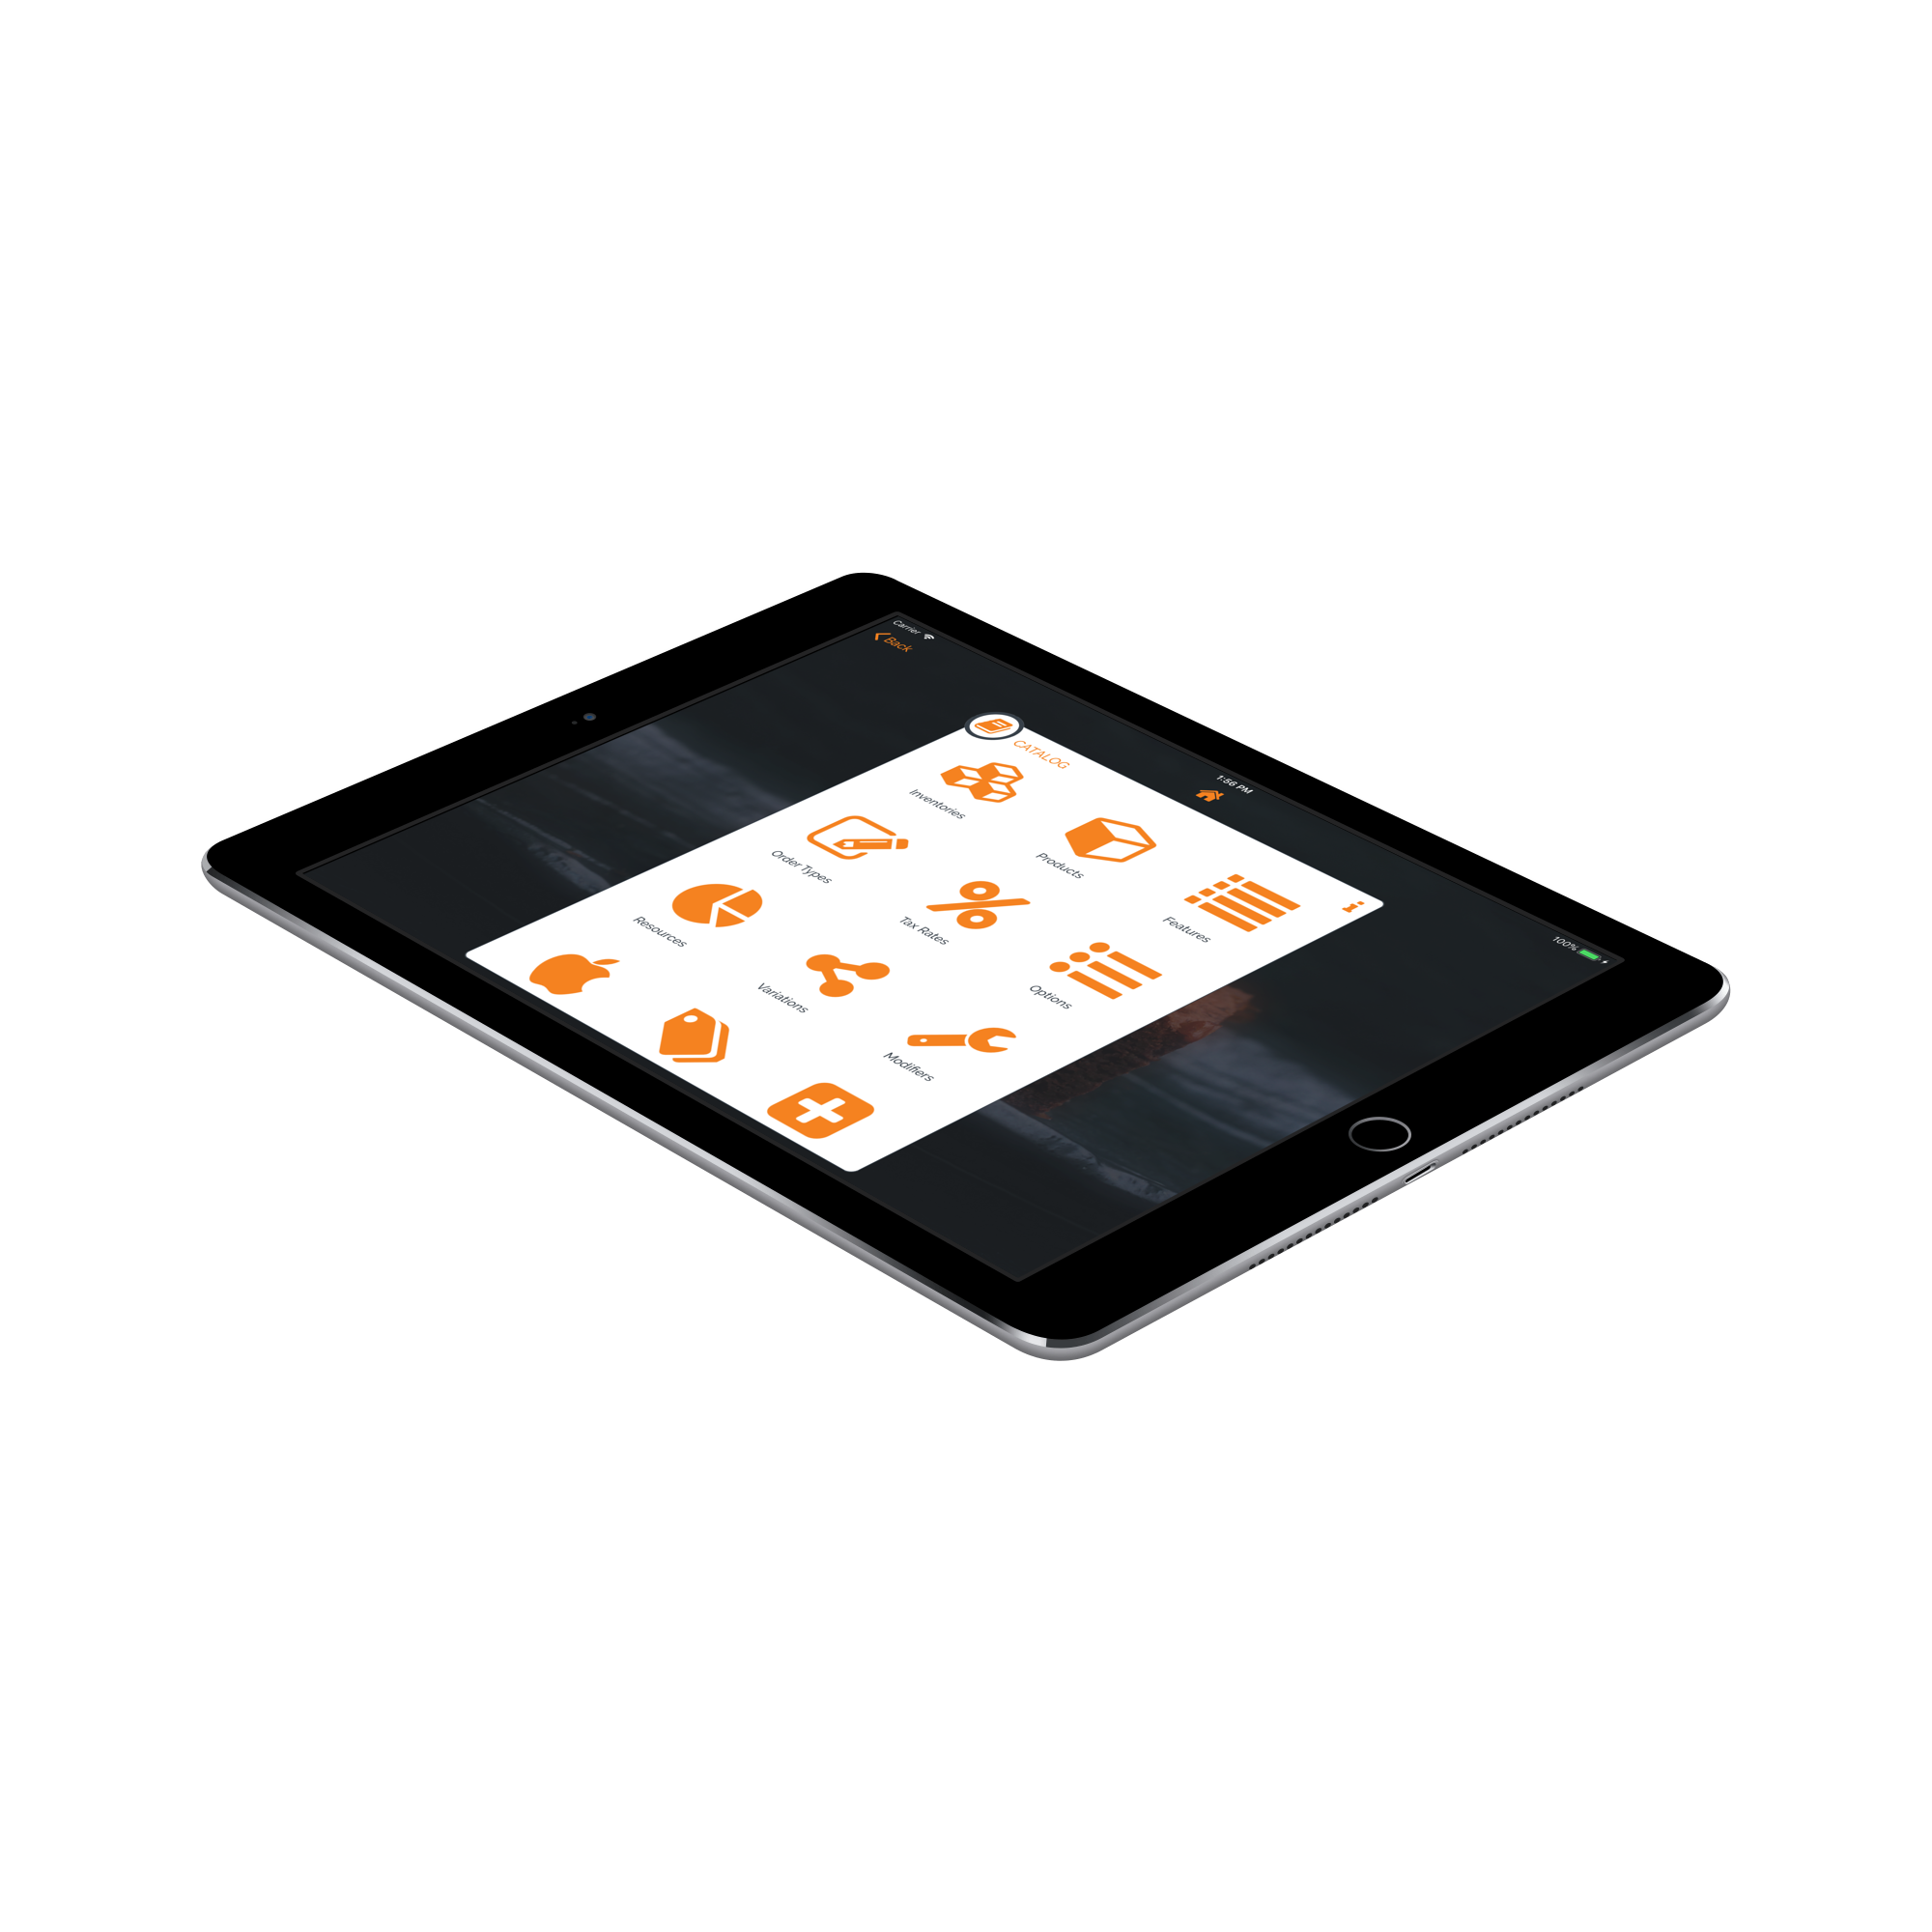 ipad catalog -  PosApptive Mobile Point of Sale Software (POS)